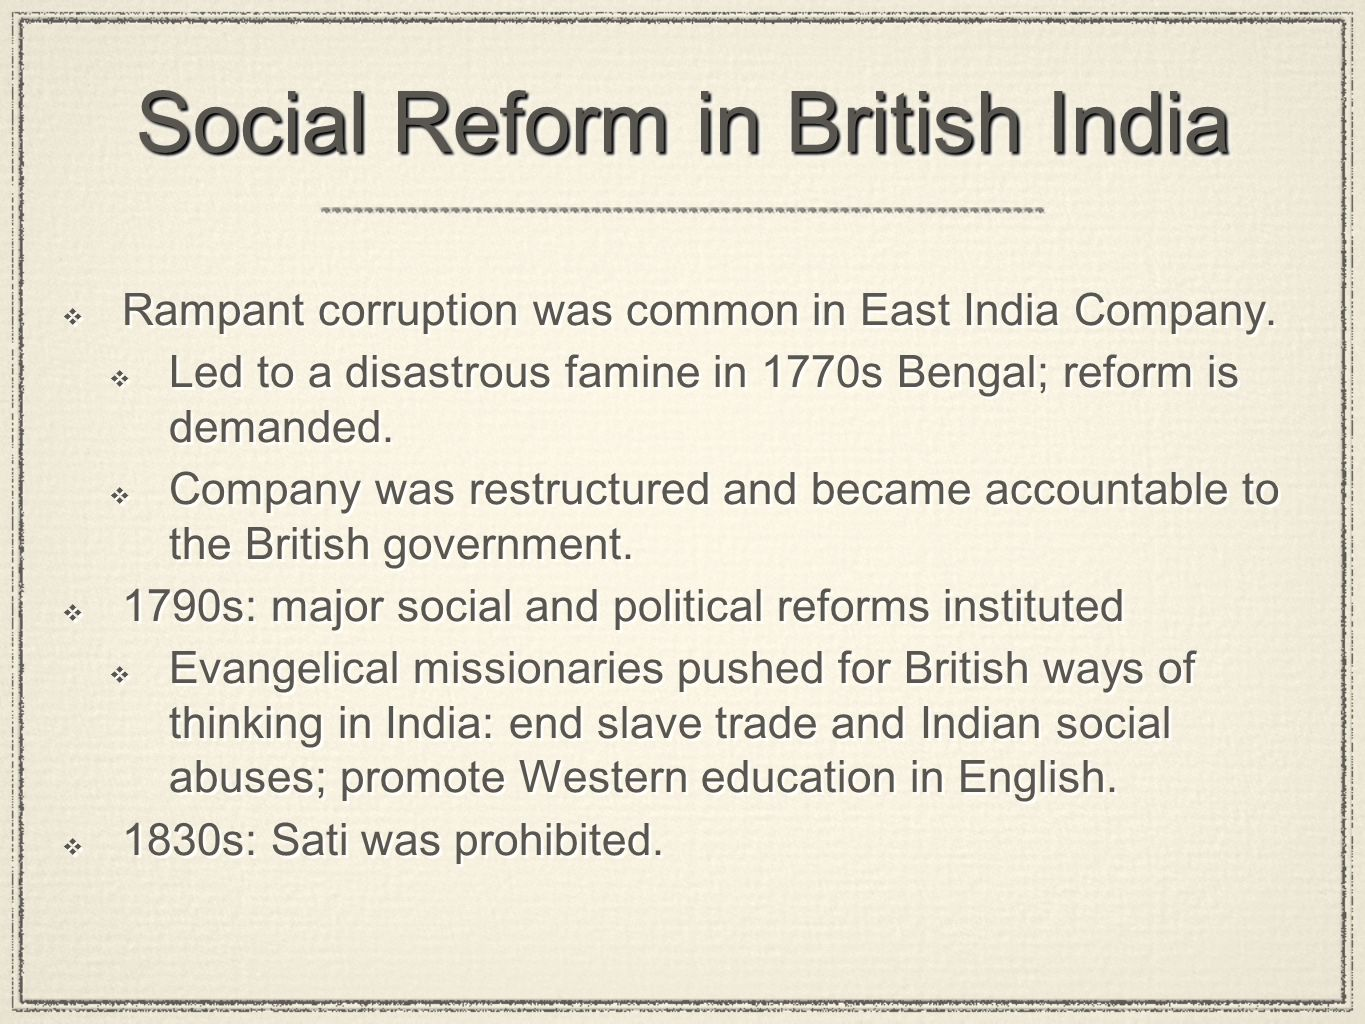 Social Reform in British India